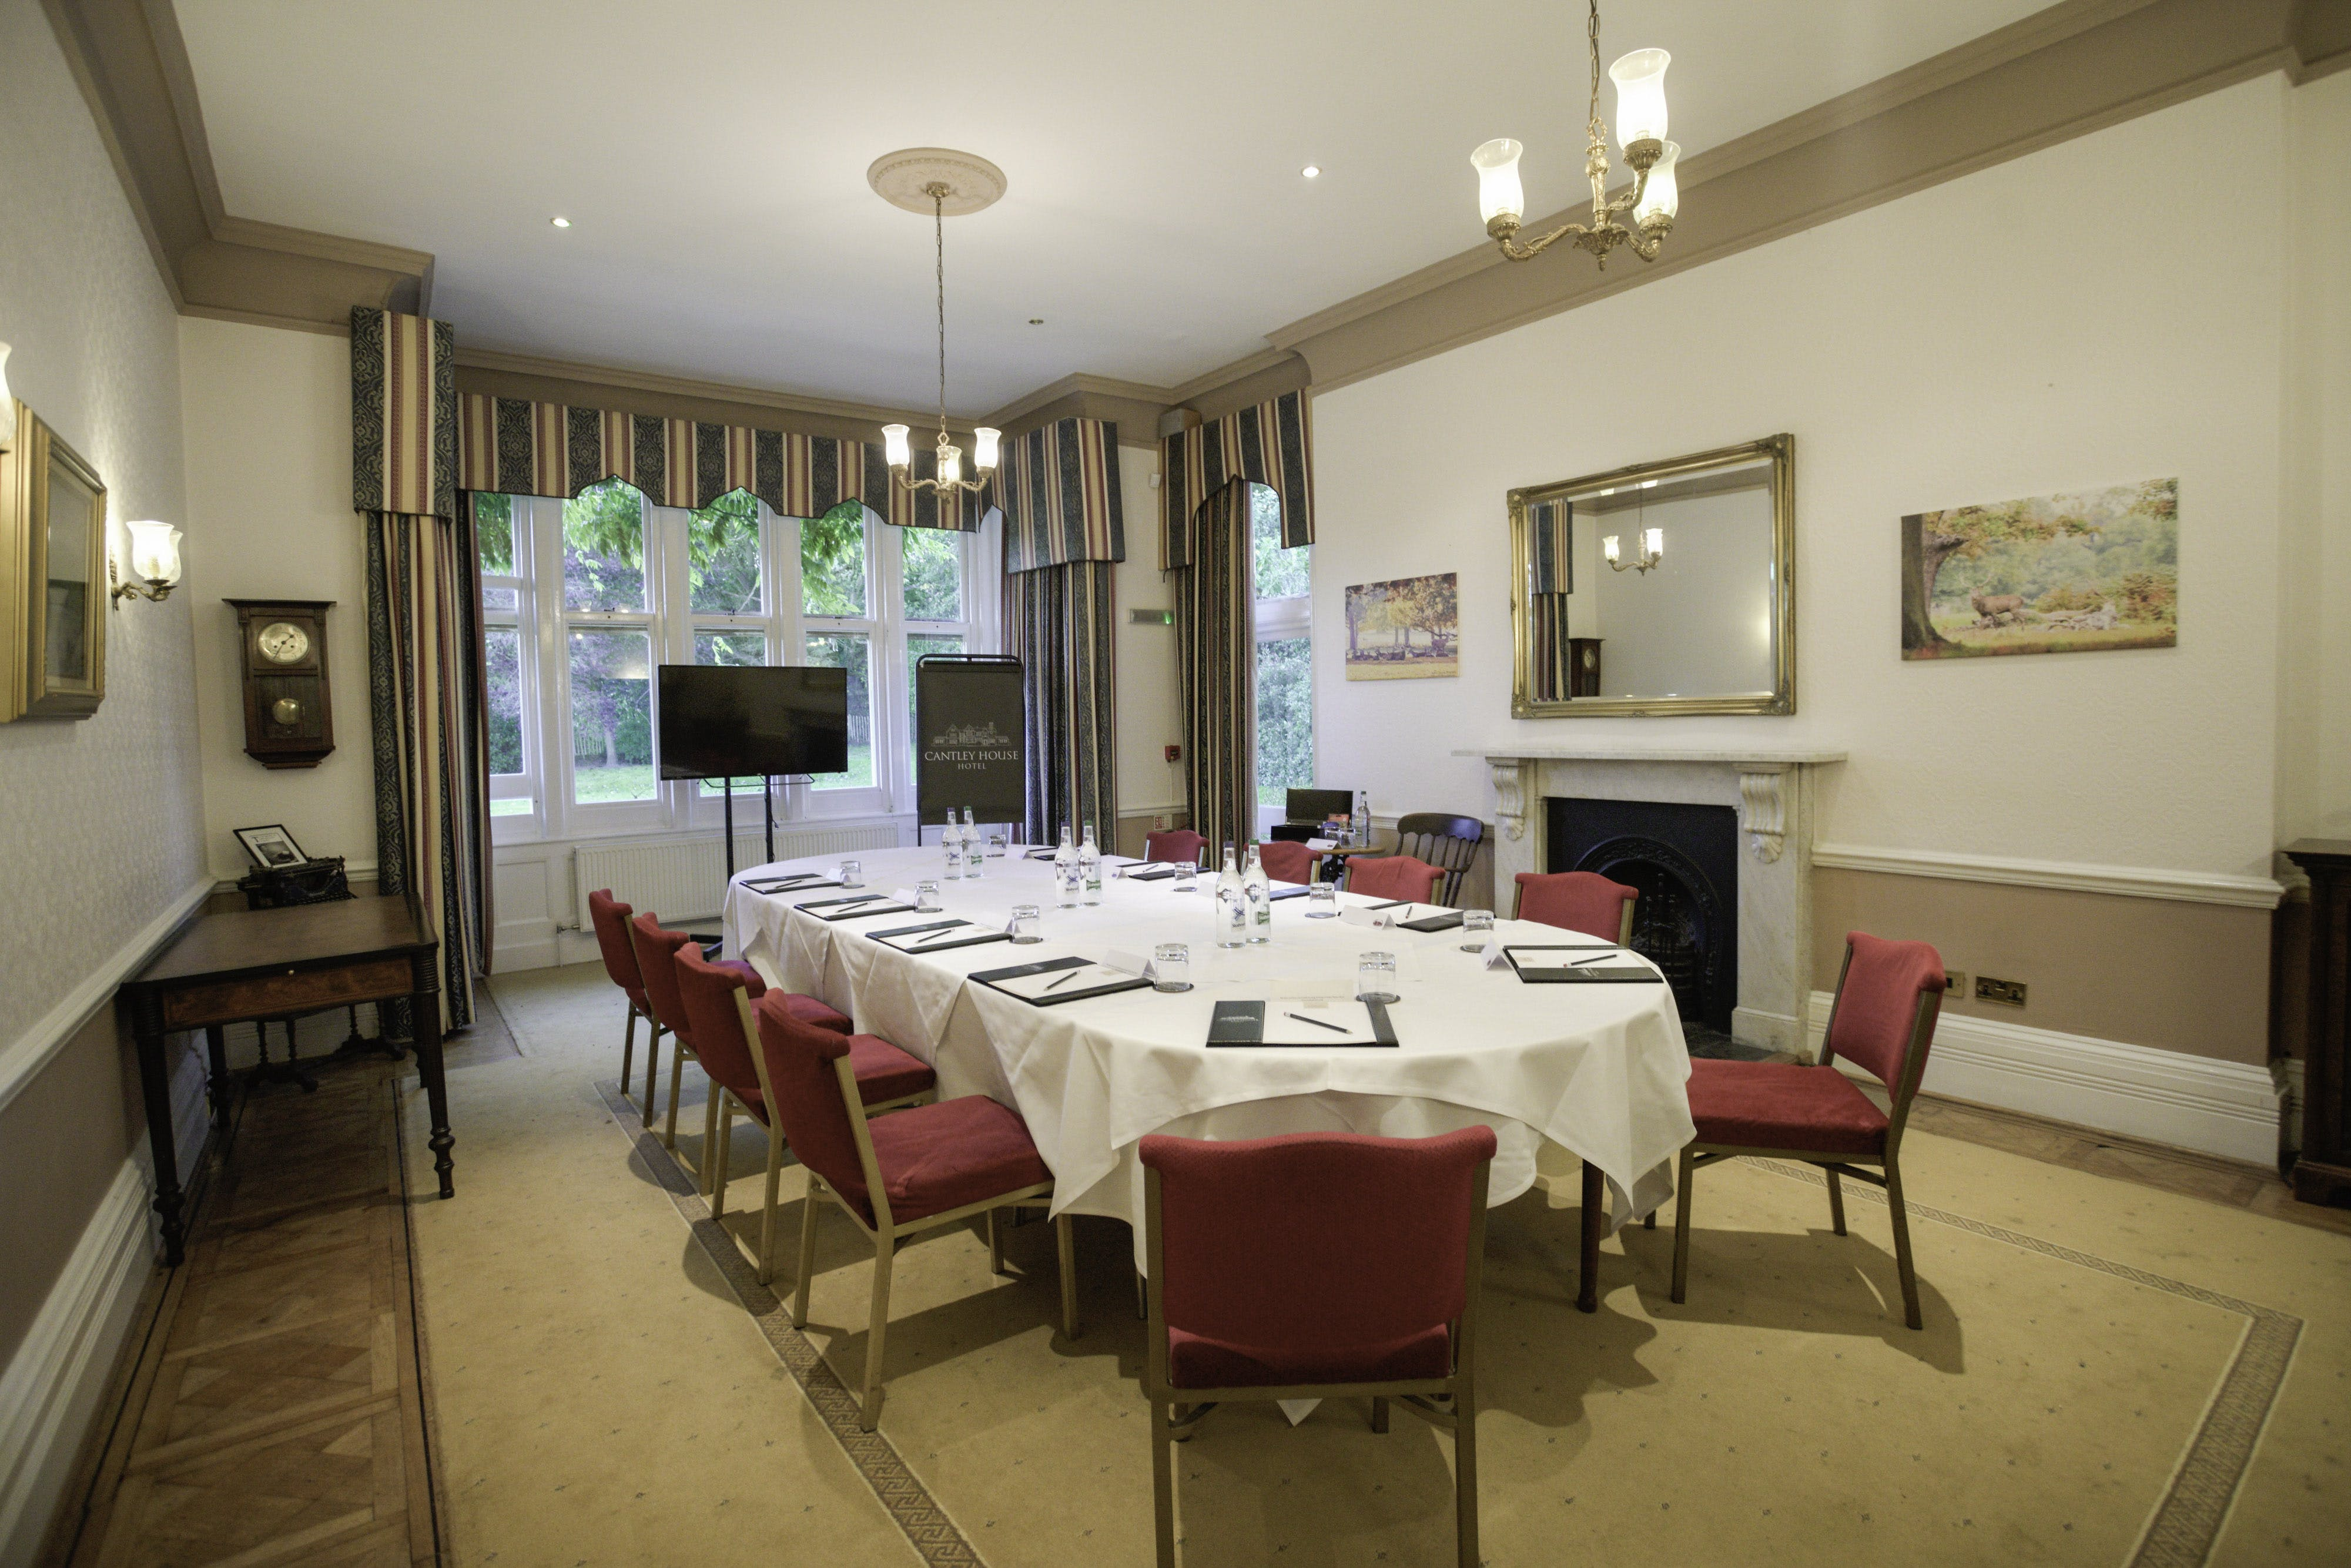 Meeting room hire near M4